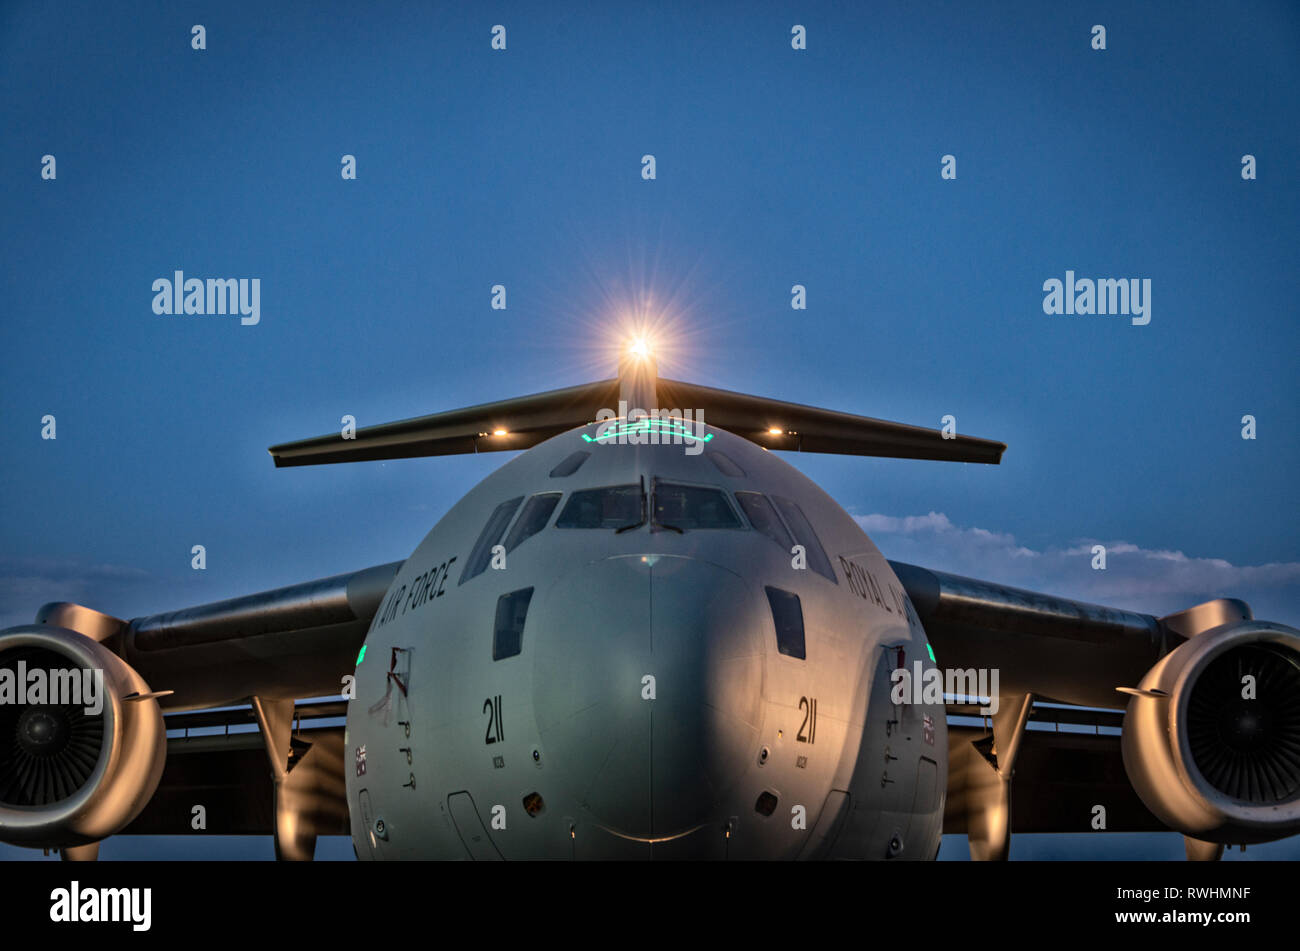 The front end of a Boeing C-17 Globemaster III at dusk - Stock Image